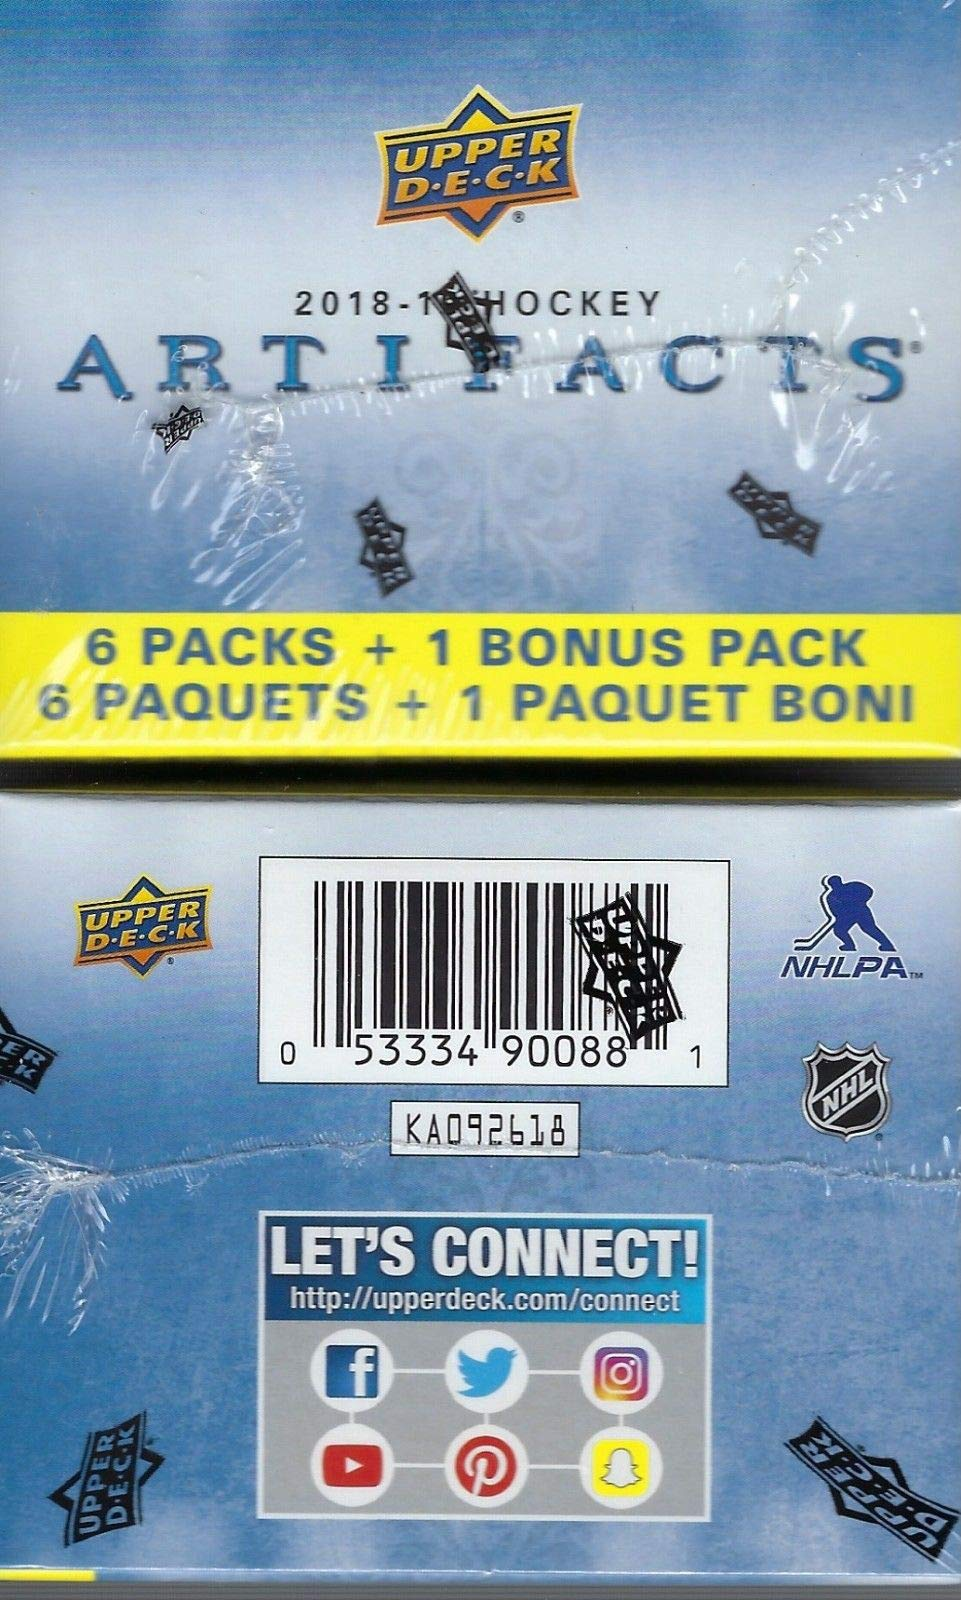 2018 2019 Upper Deck ARTIFACTS Hockey Series Unopened Blaster Box of Packs with Chance for Stars and Rookie Redemptions plus Possible Autographs and Divisional Artifacts Jersey Cards